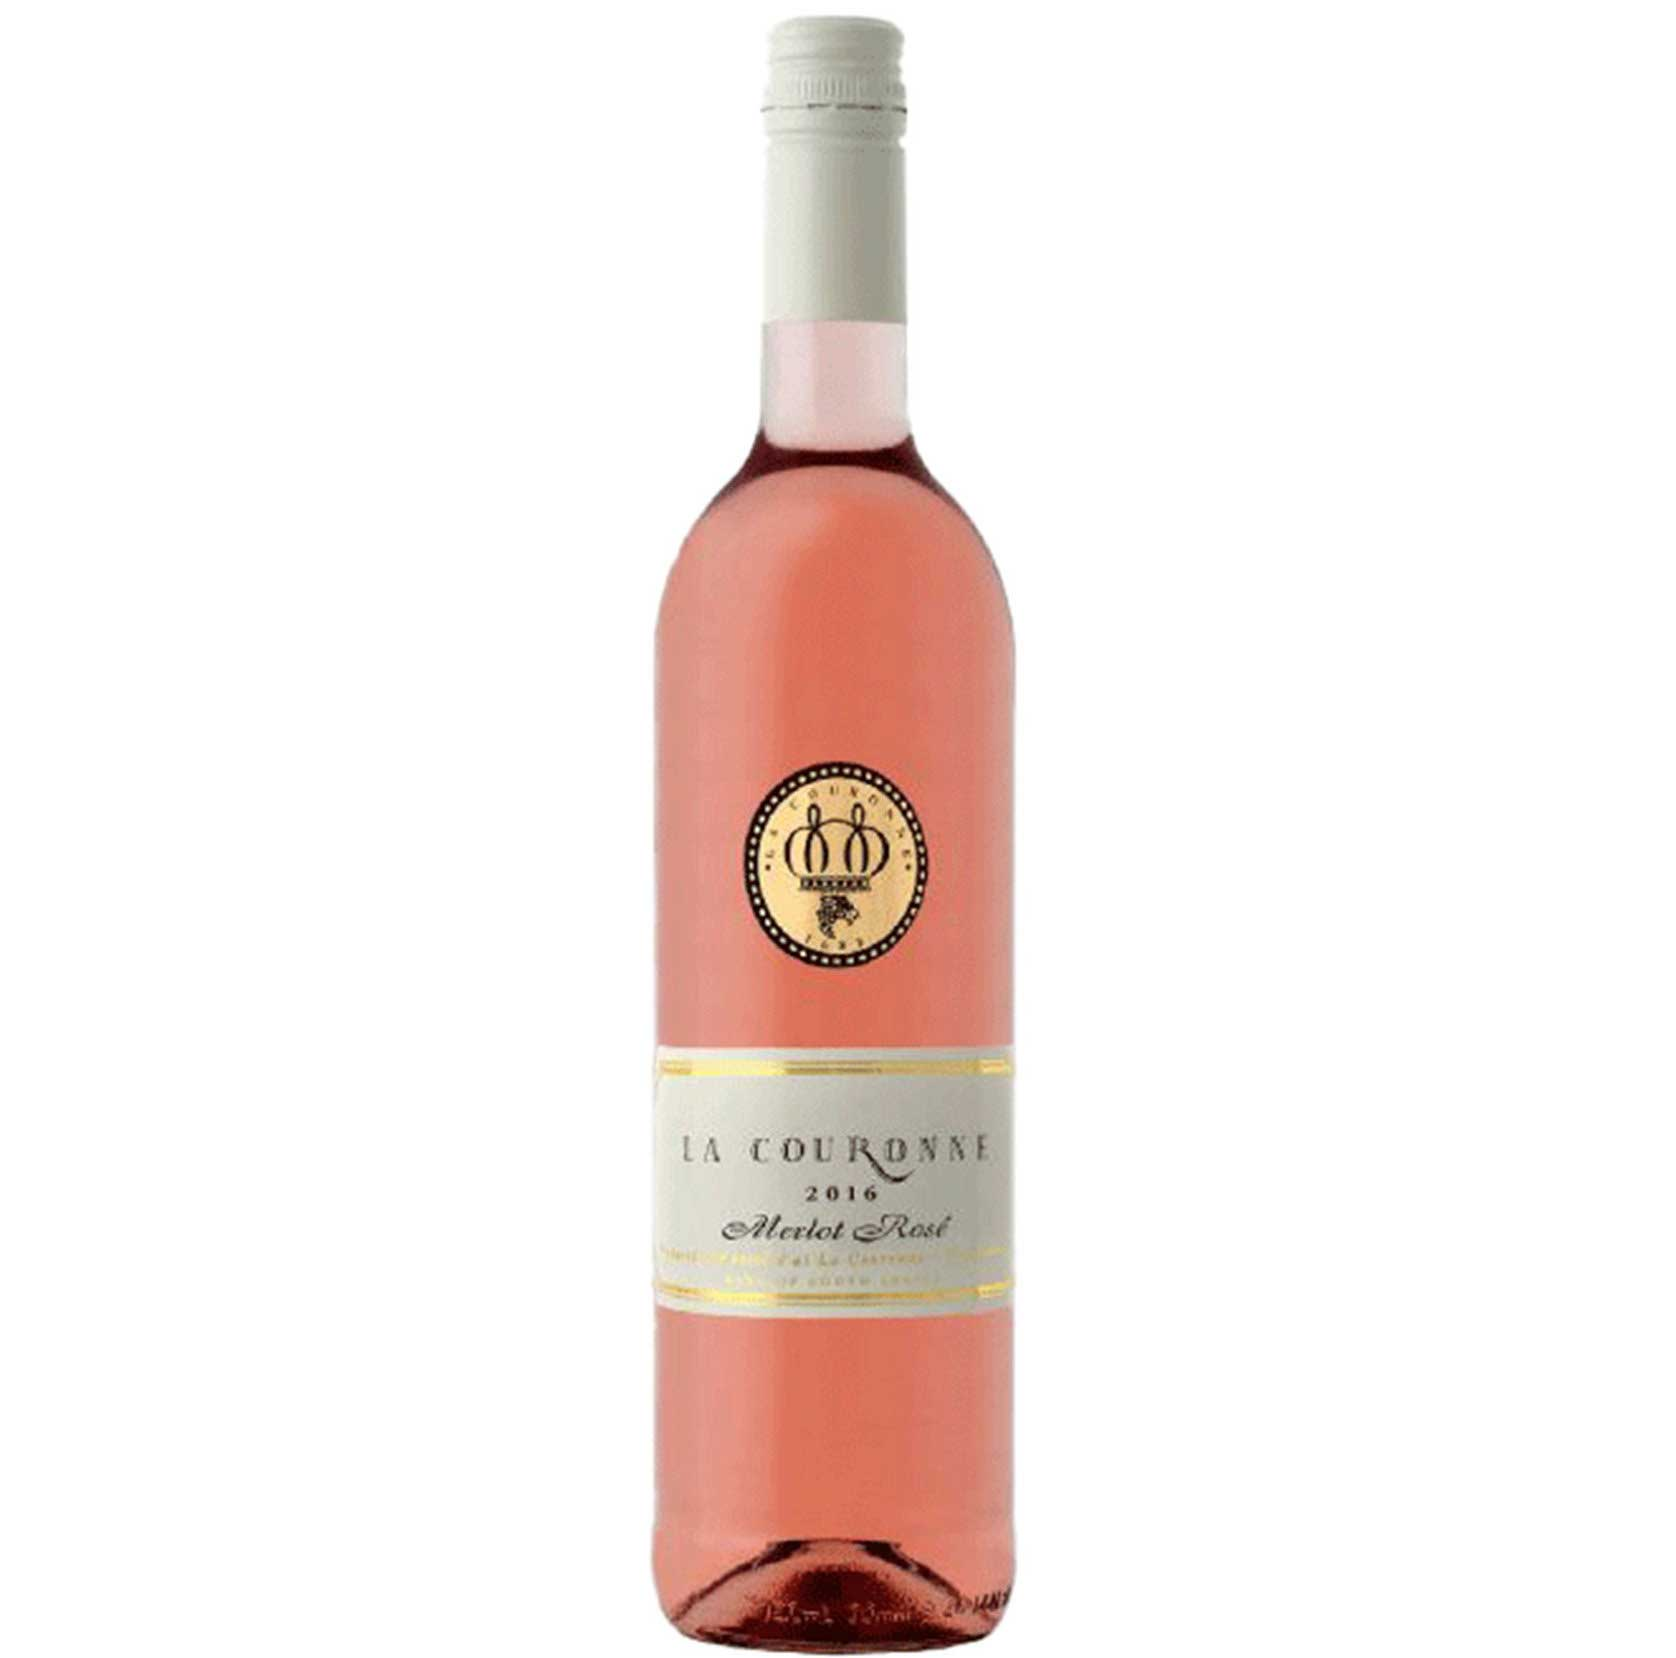 Rose La Couronne Merlot Rosé 2018 south african wine - Brands From Africa